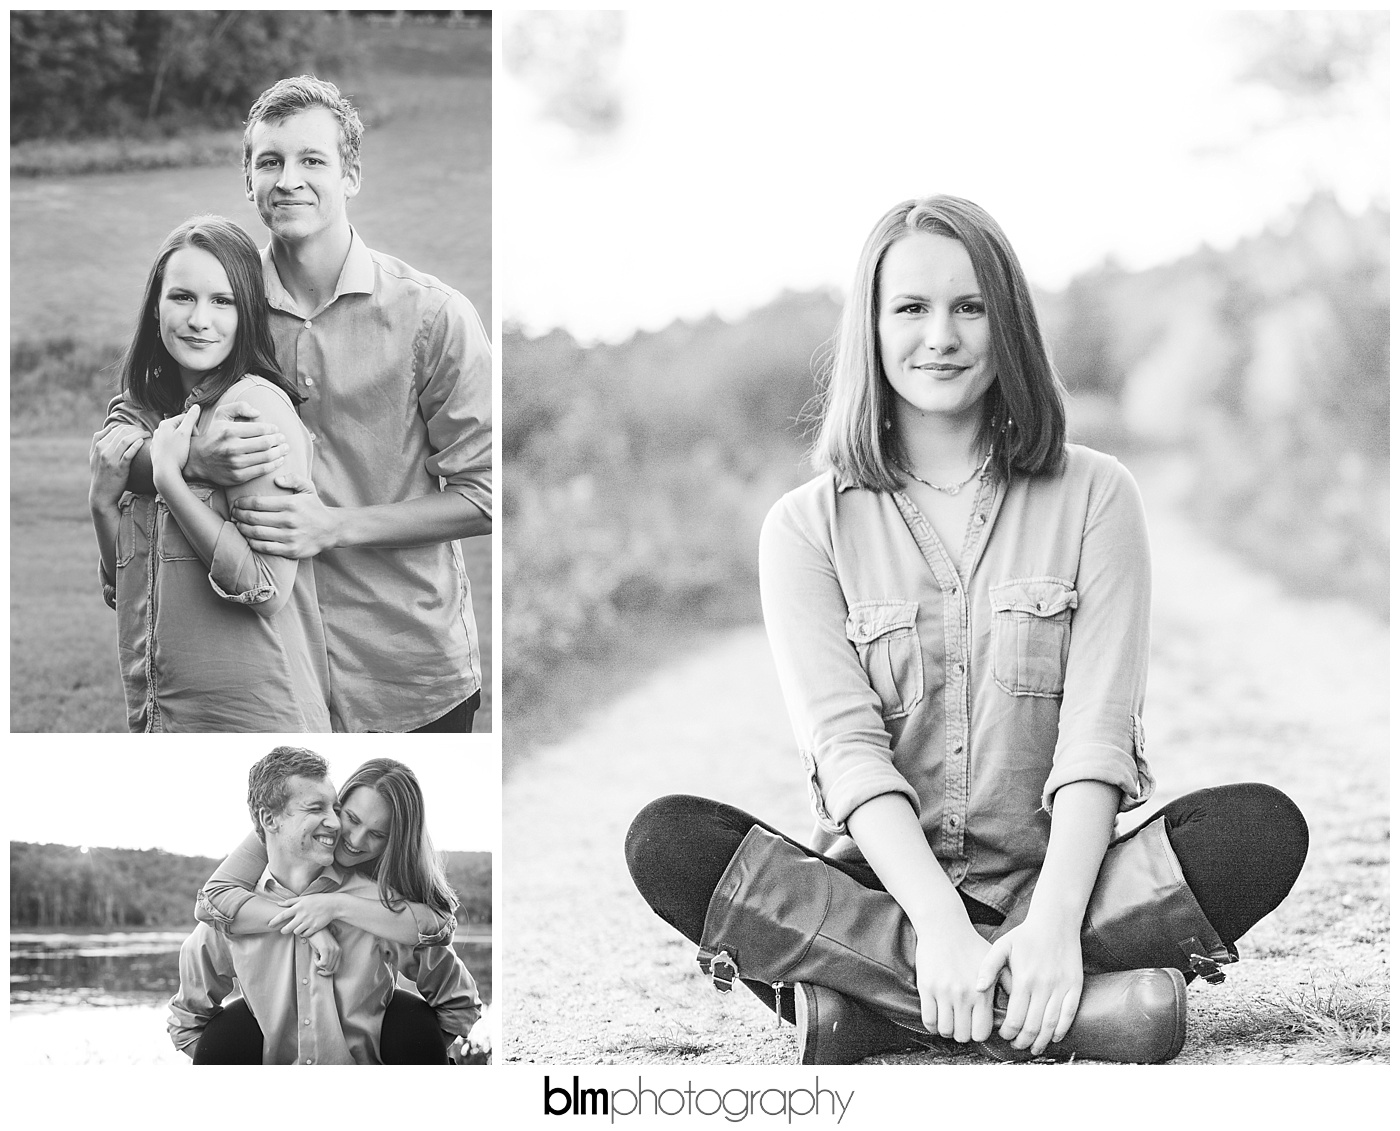 Isaac-and-Gwen_Senior-Portraits_091516-3285-2.jpg